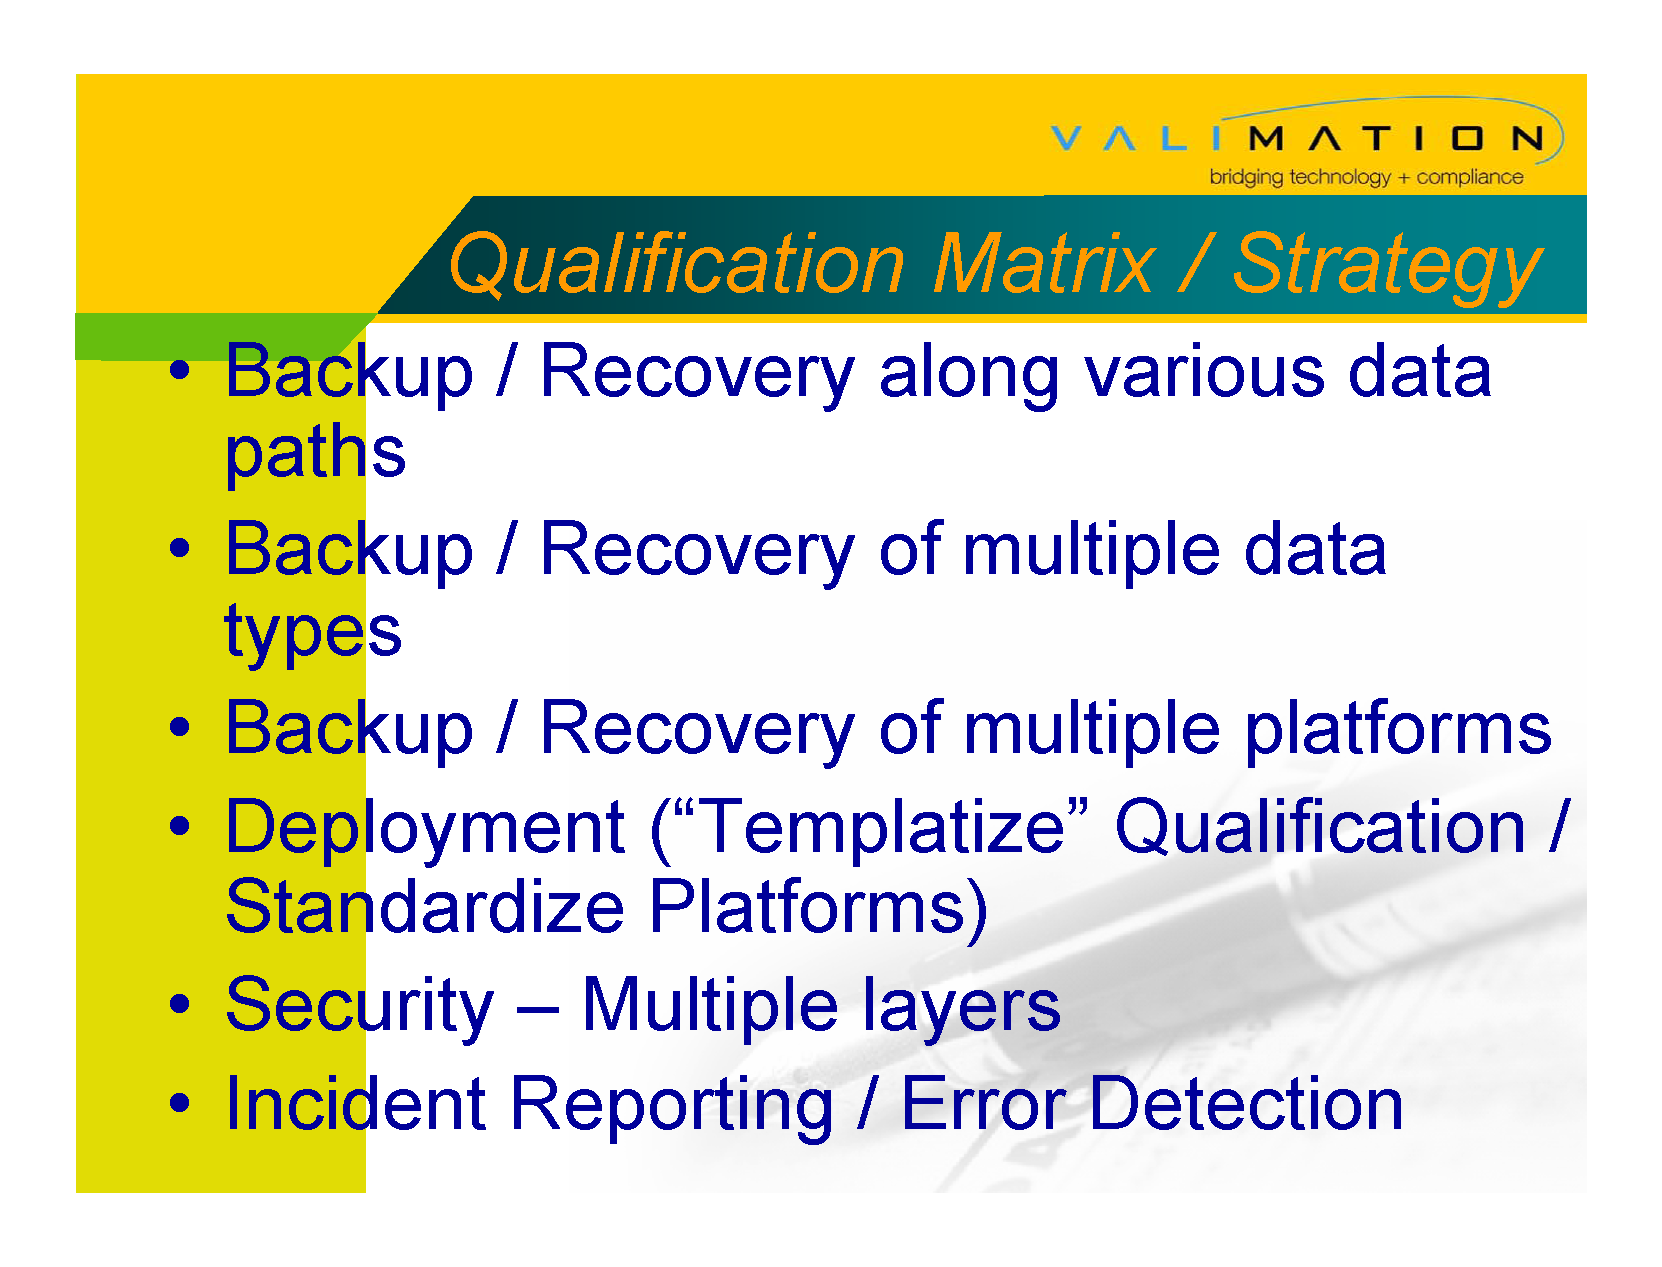 Validating an Enterprise Backup System by ValiMation_Page_16.png